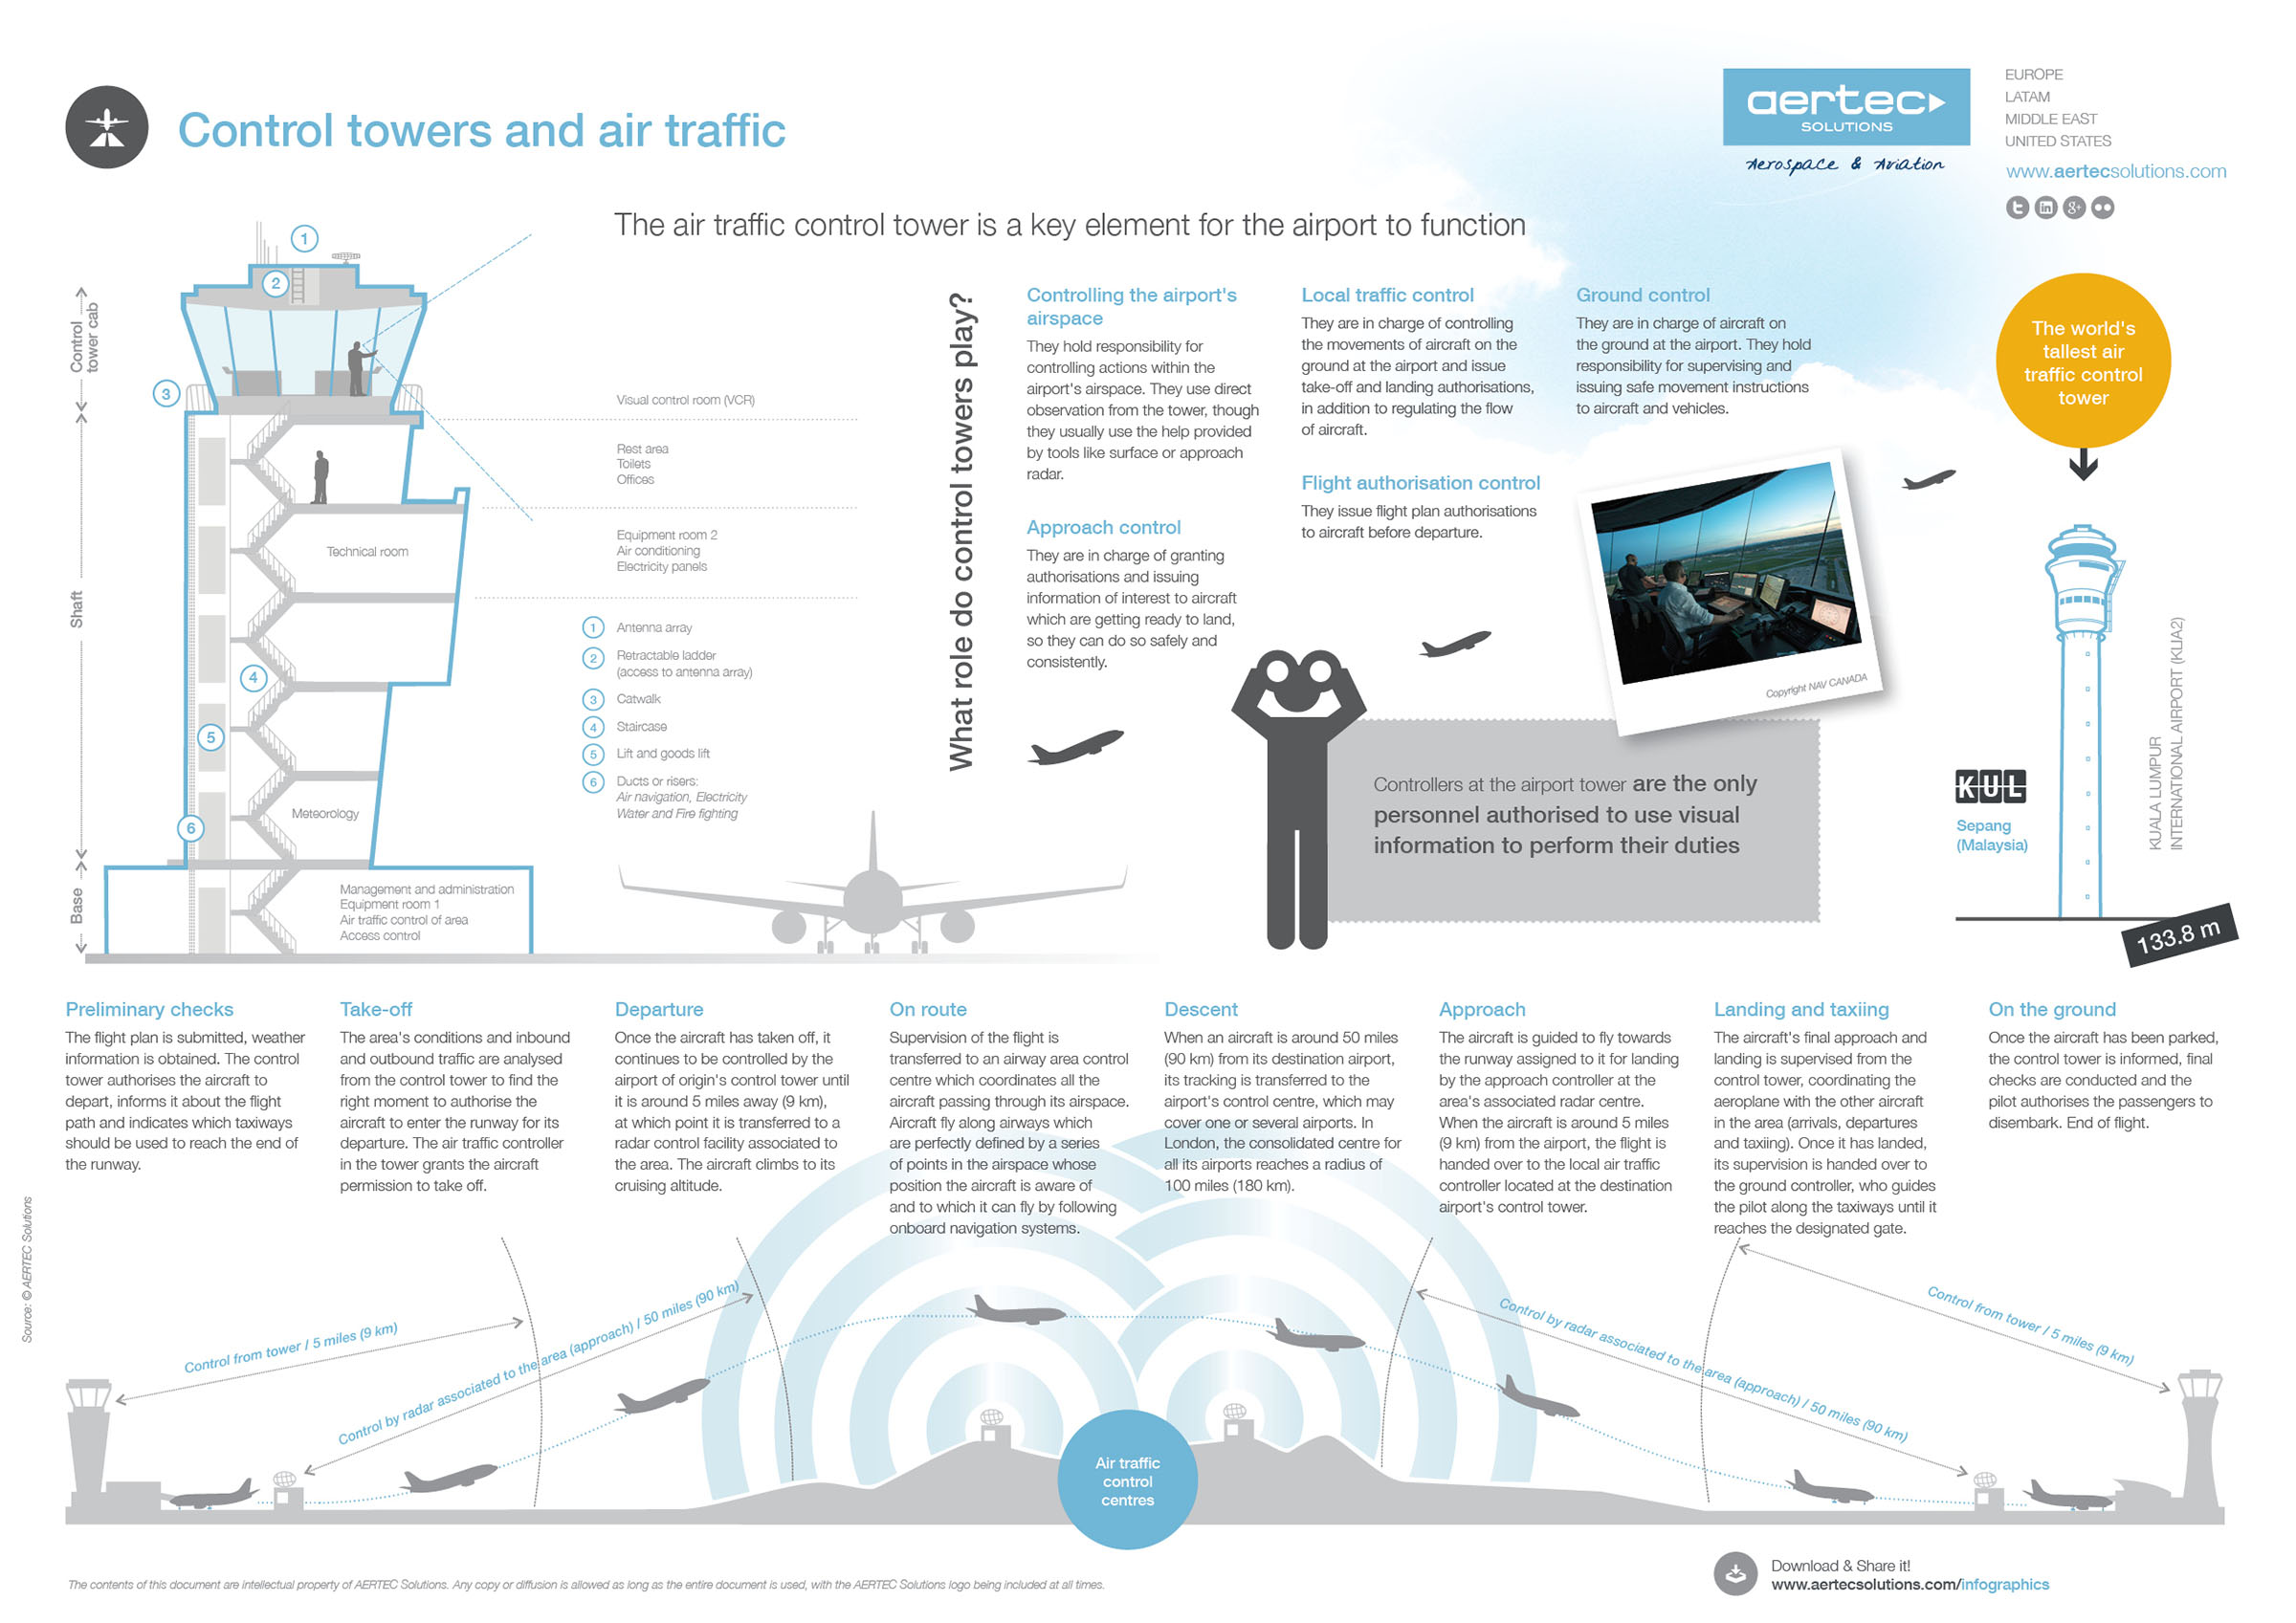 Control towers and air traffic